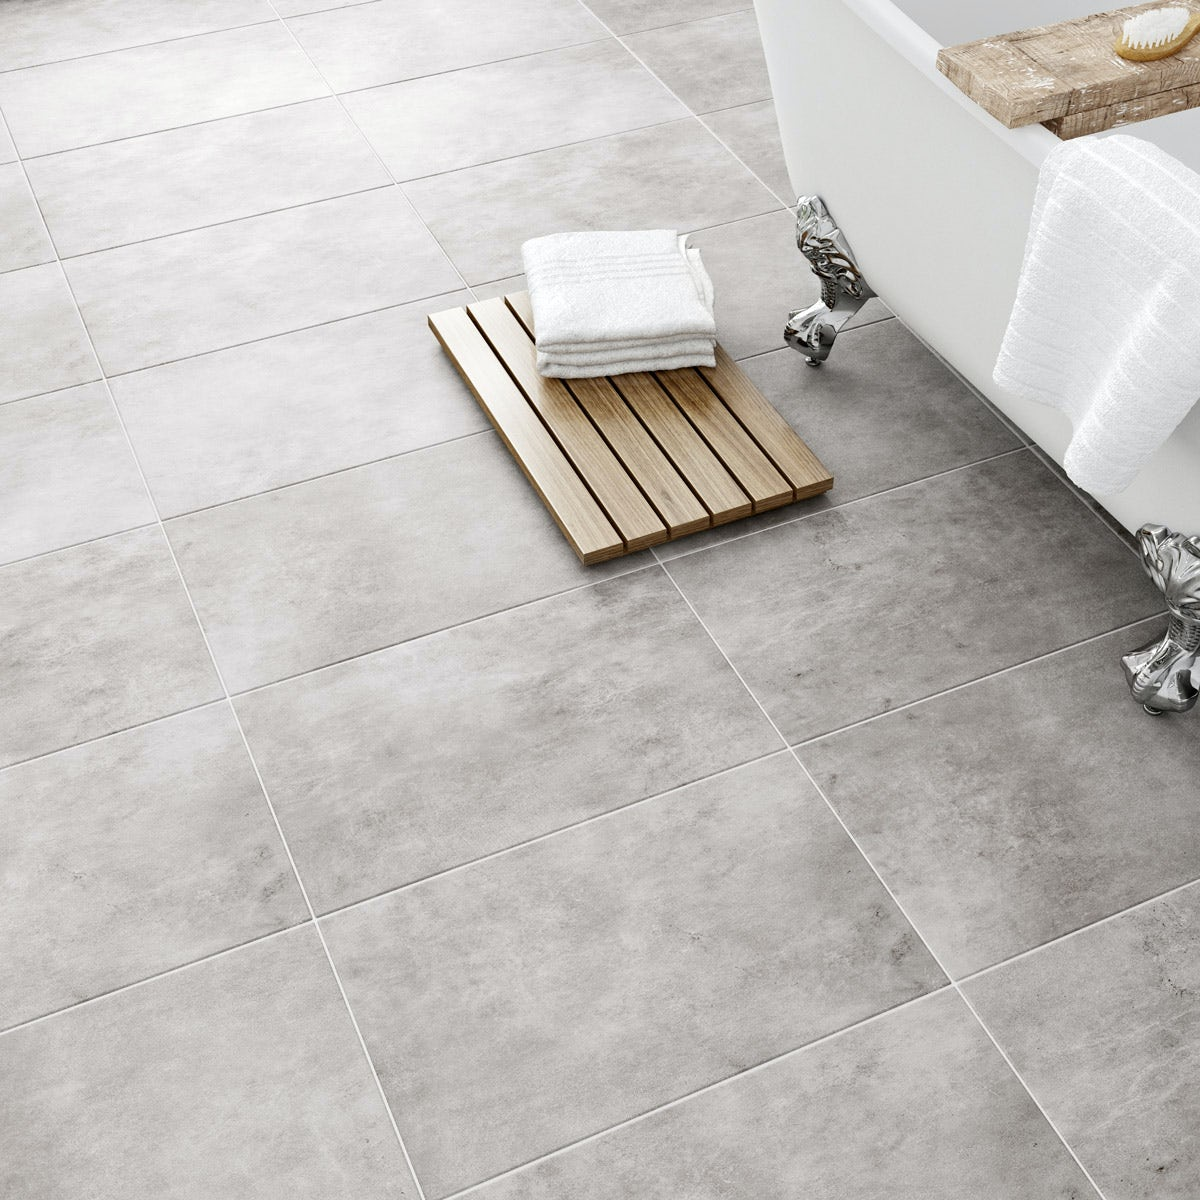 Laura ashley heritage plain dove grey wall floor tile 298mm x laura ashley plain dove grey wall floor tile 298mm x 498mm dailygadgetfo Image collections